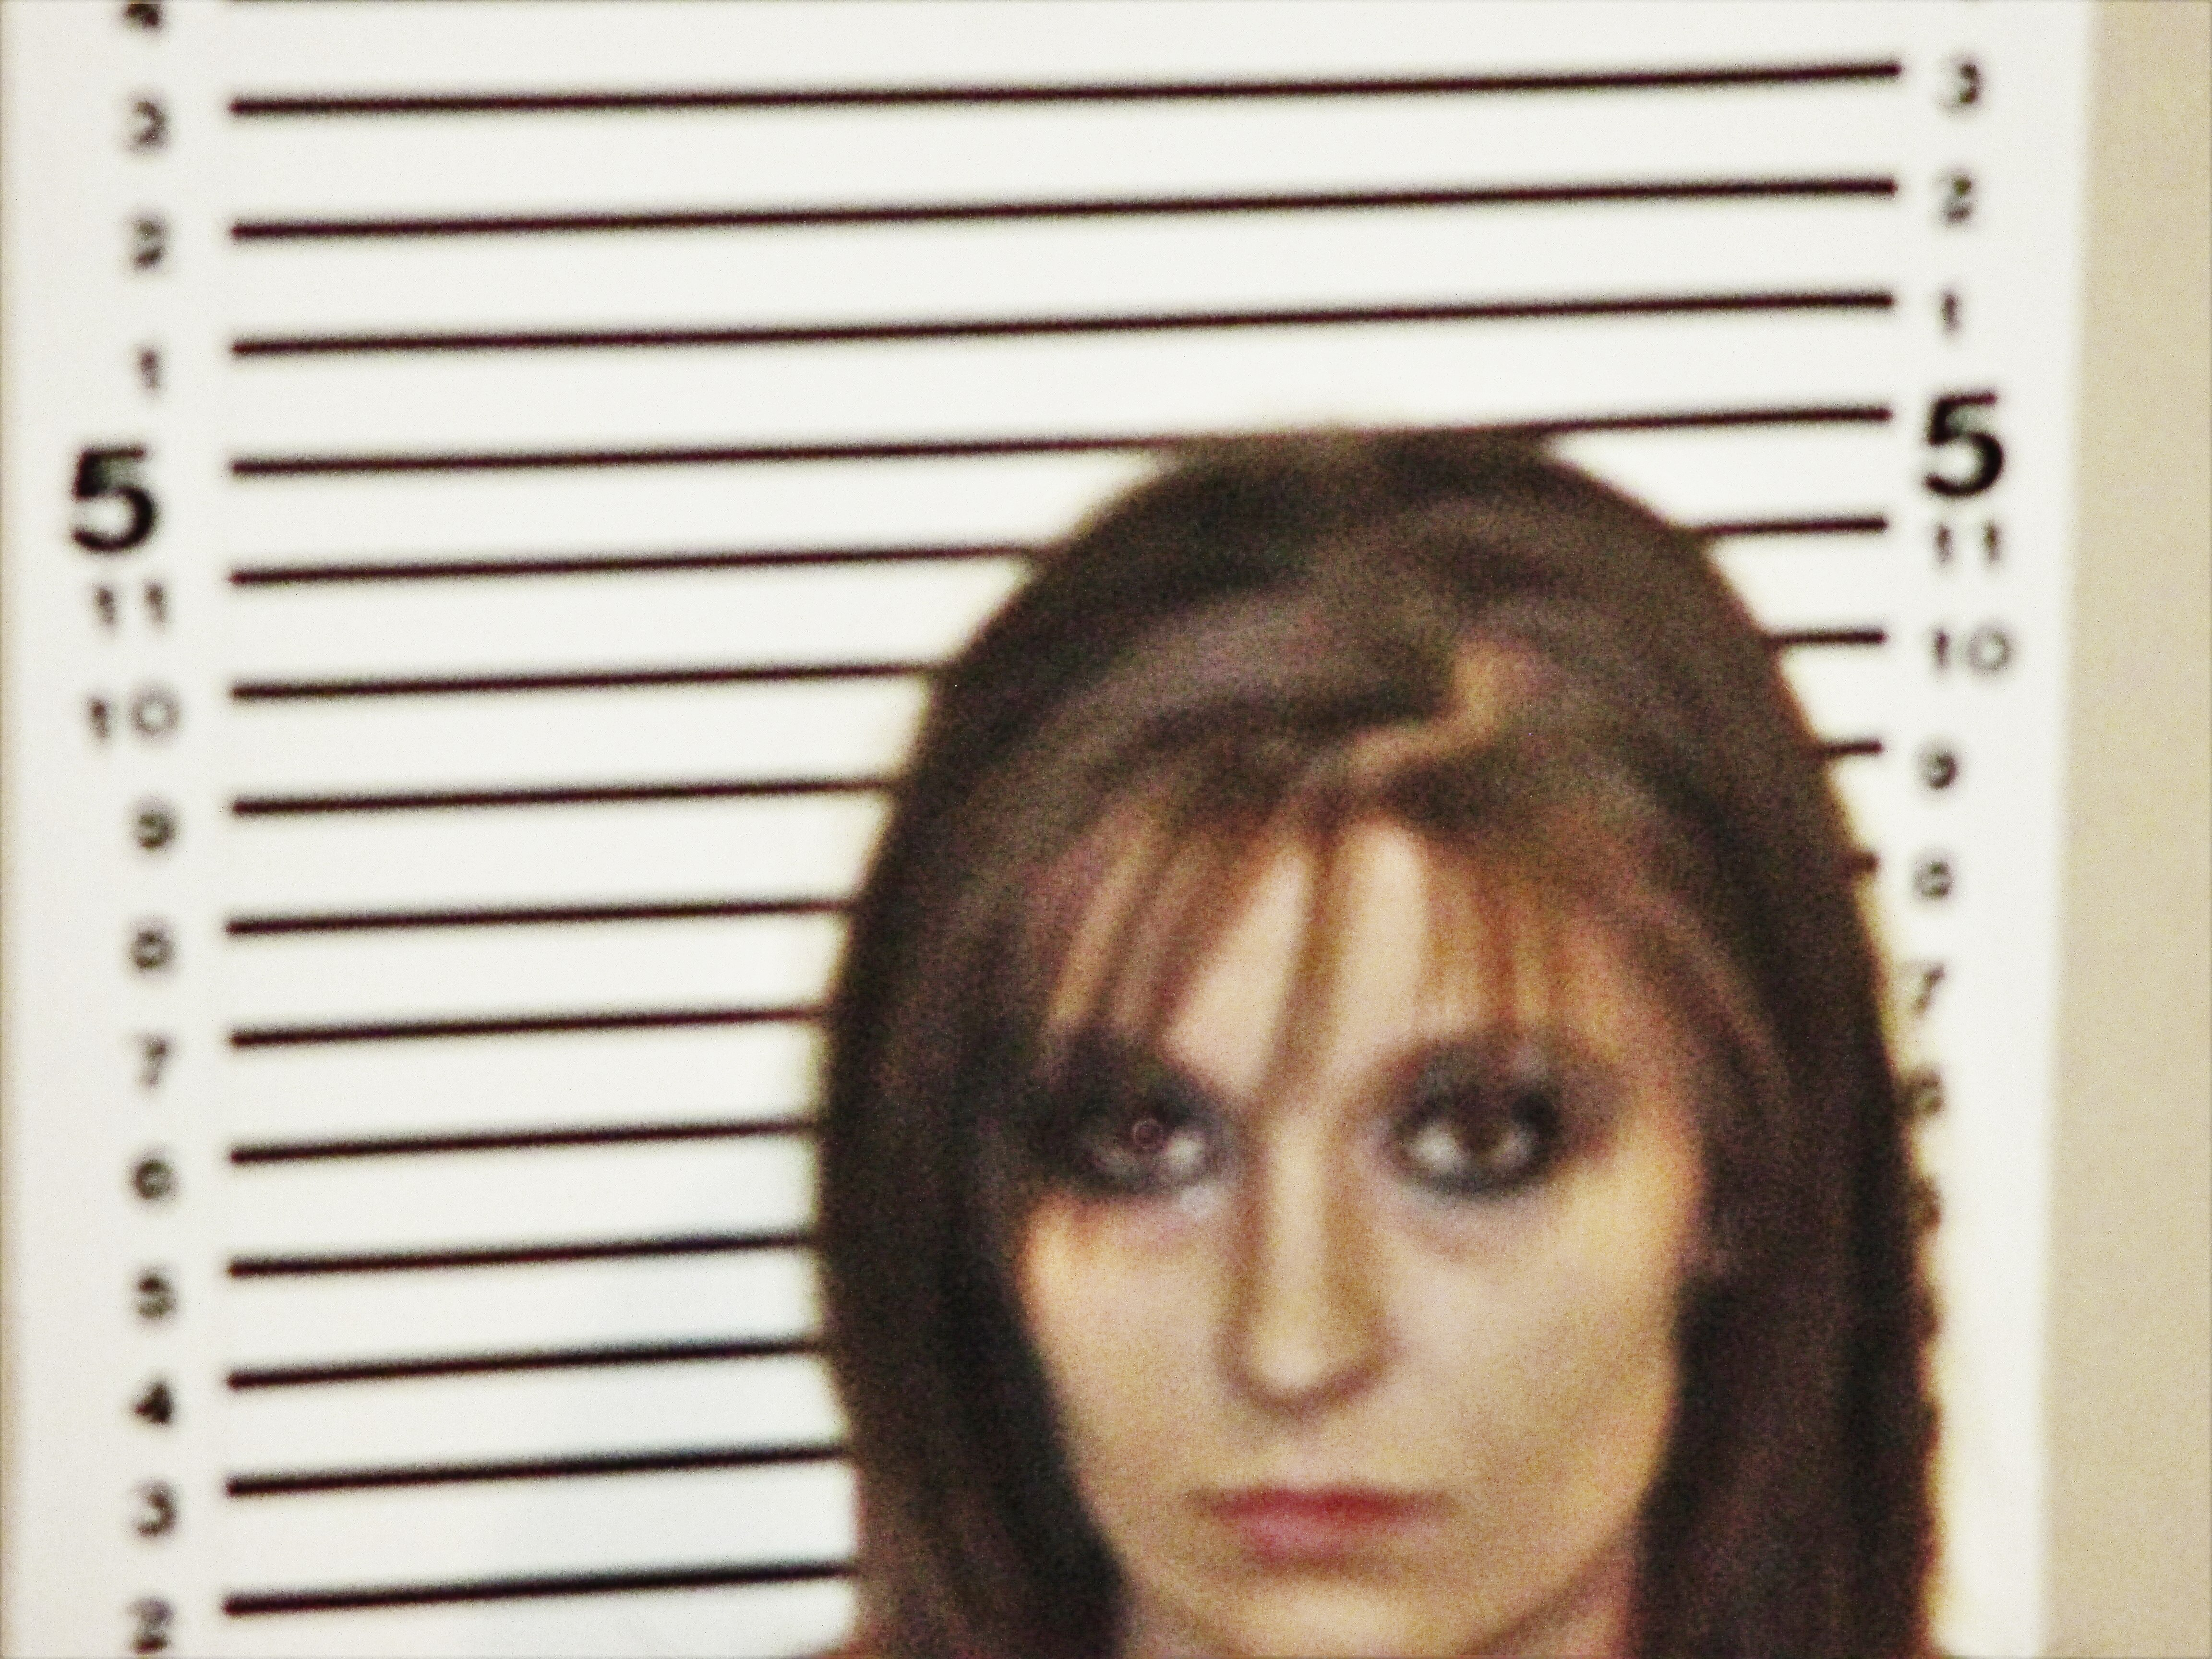 Idaho Falls woman arrested for drug possession